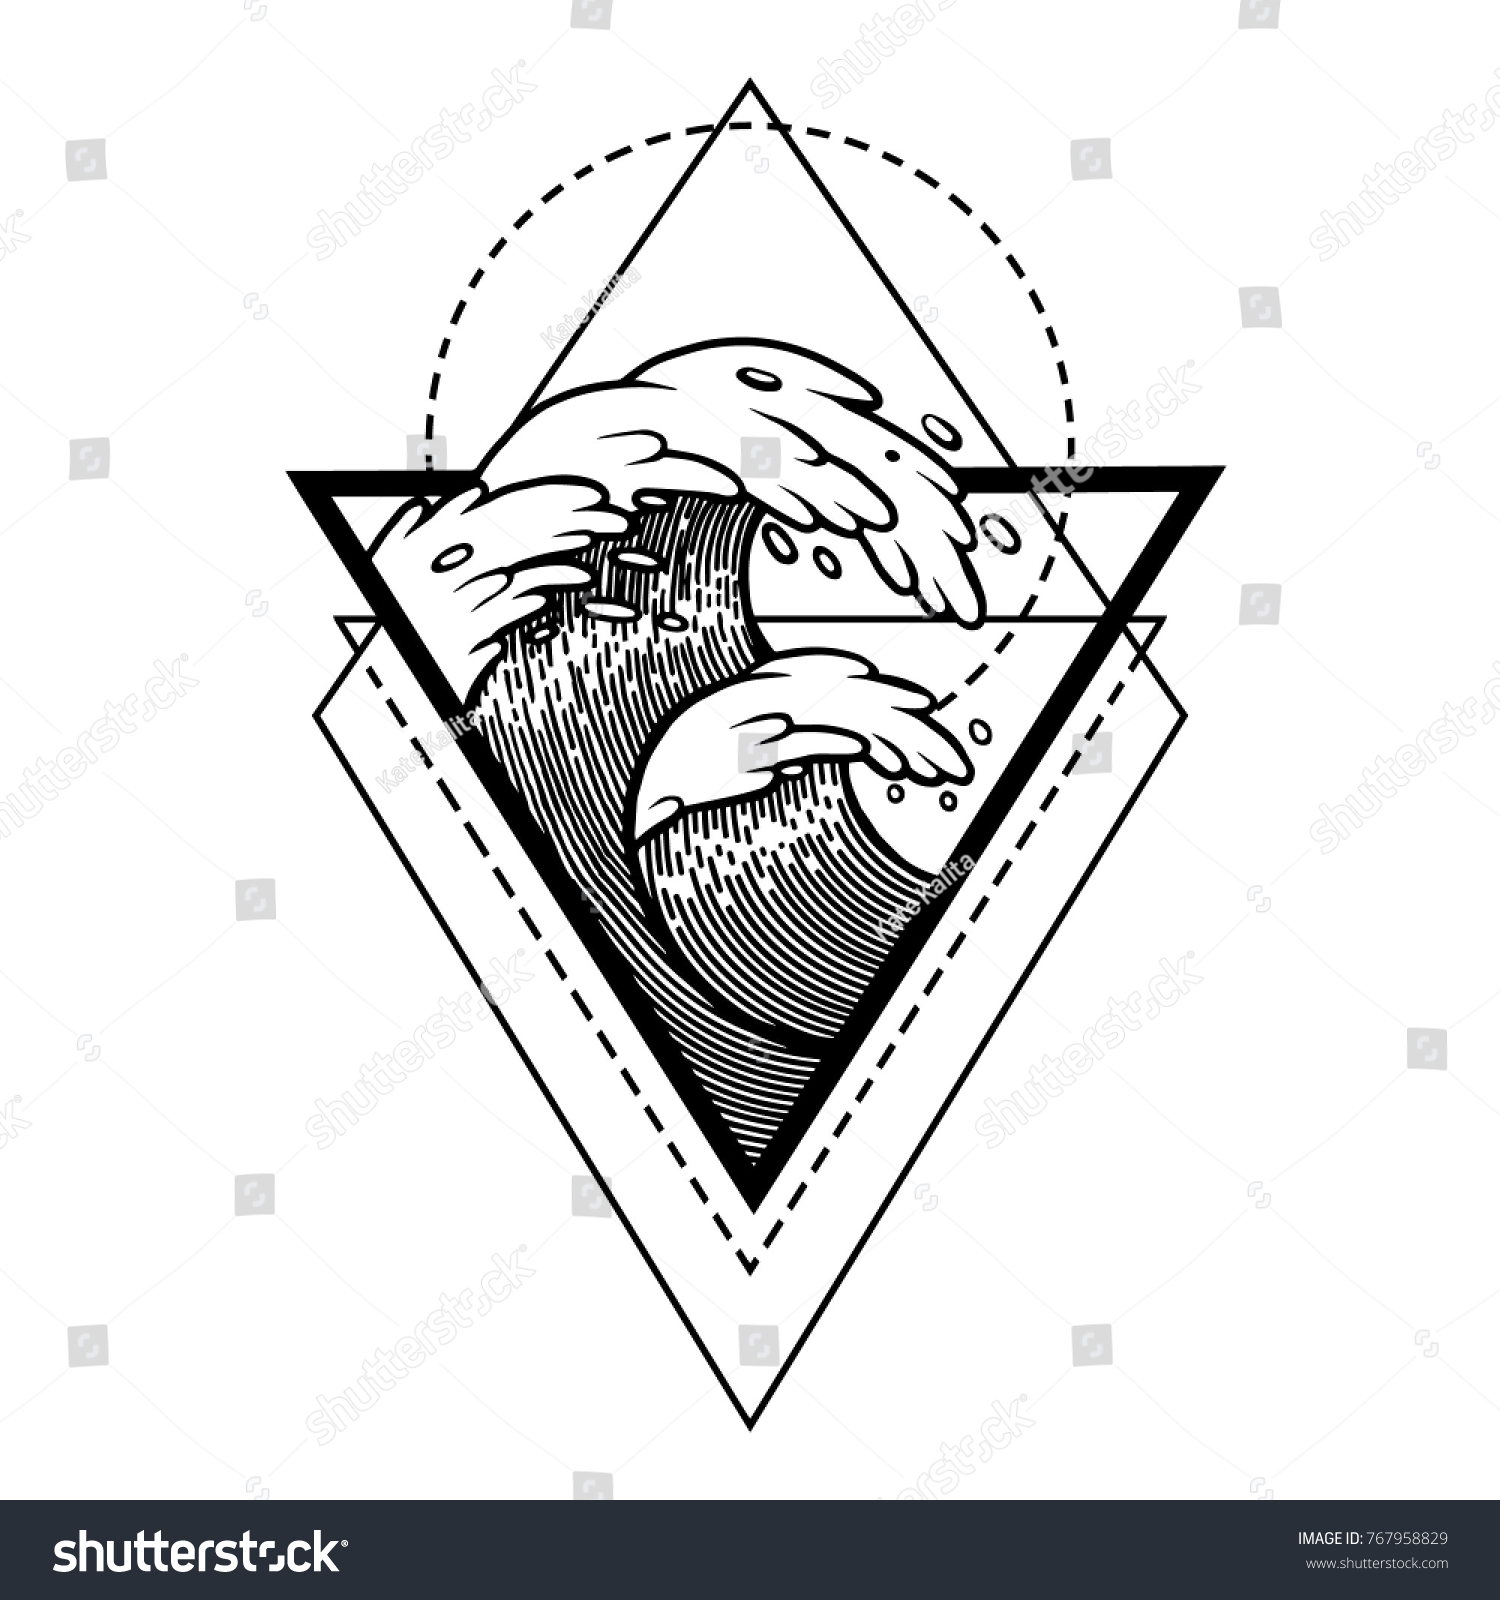 Water waves water sacred geometry frame stock vector 767958829 water waves in the water with sacred geometry frame tattoo mystic symbol boho biocorpaavc